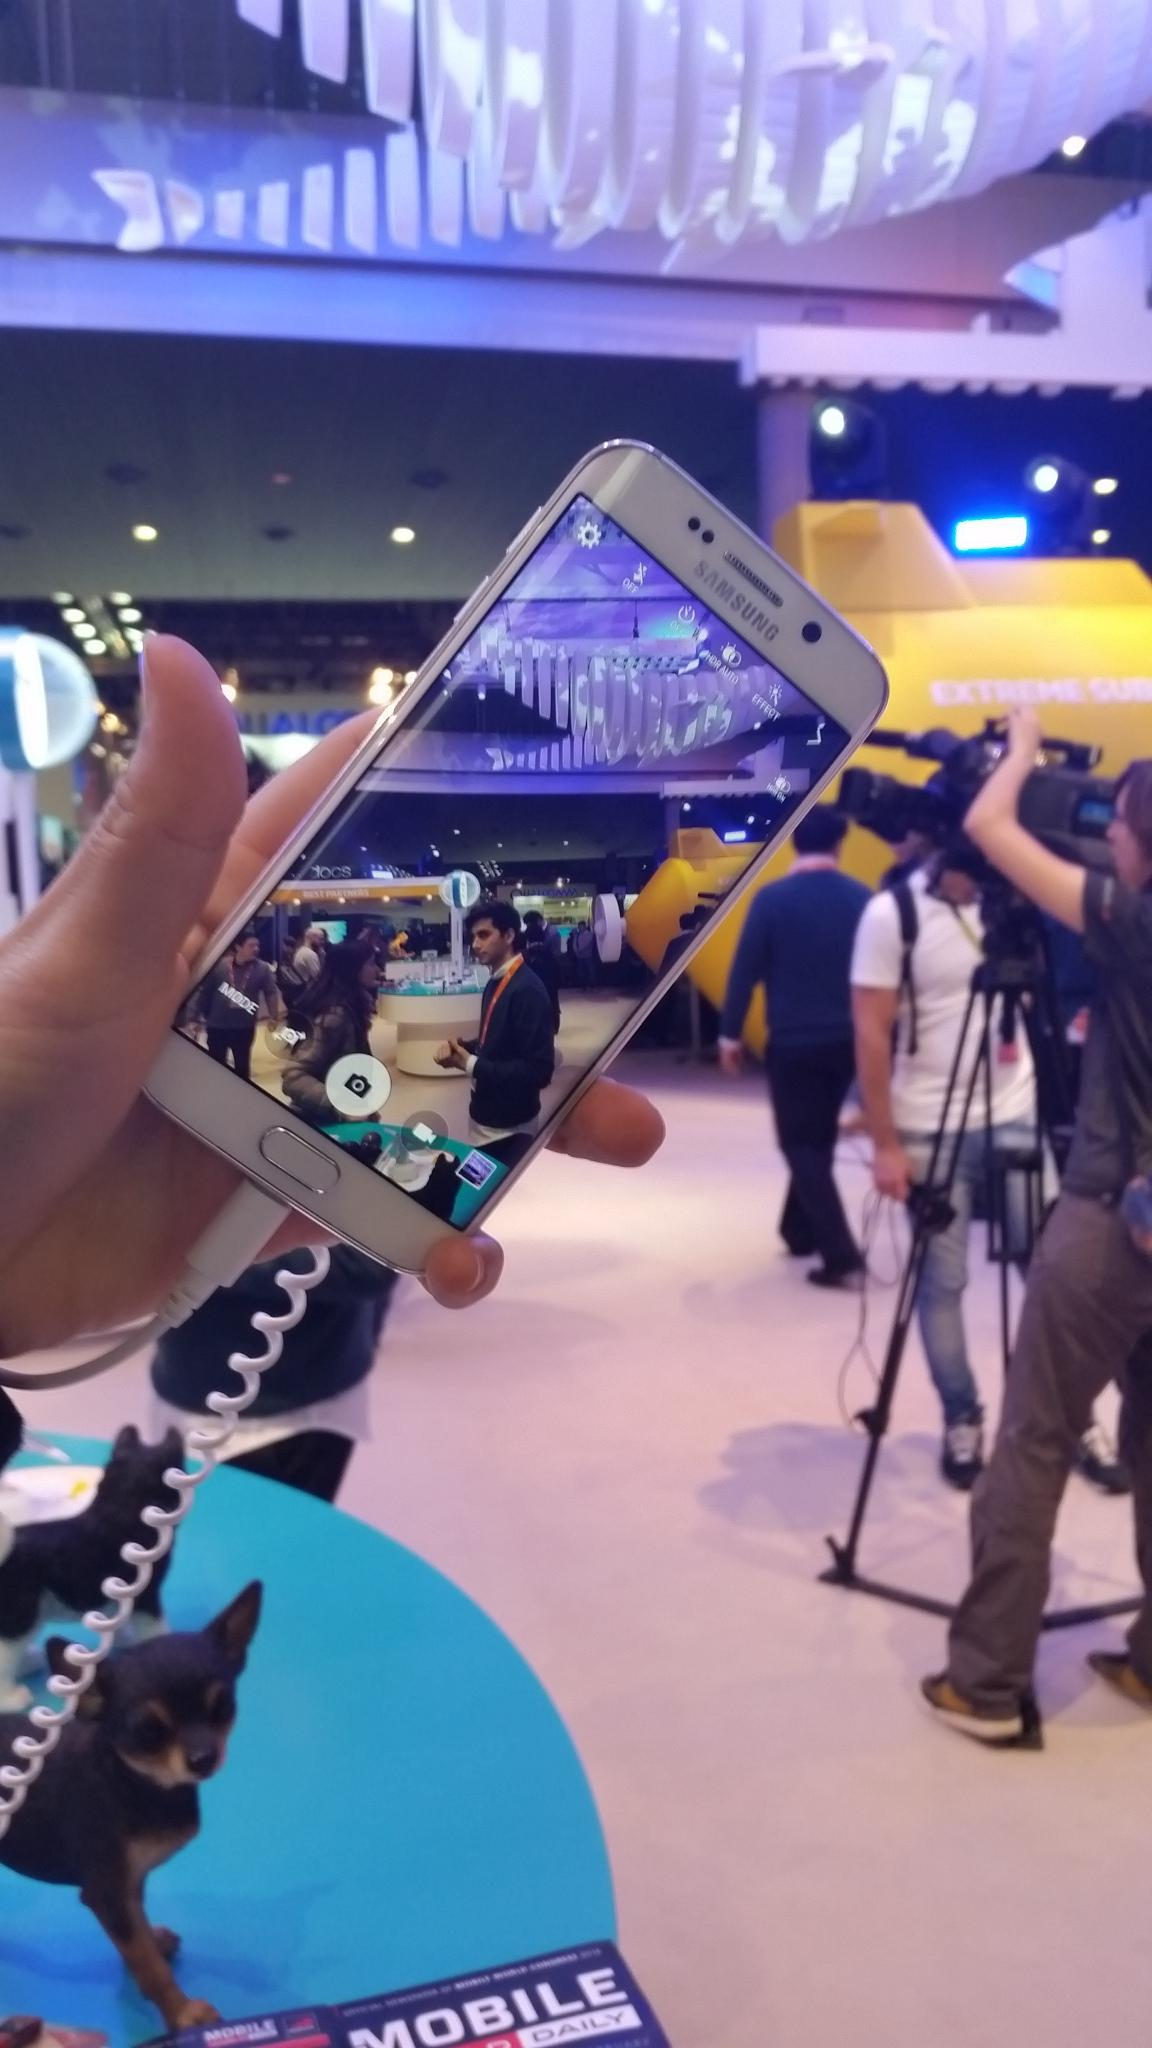 Las_10_novedades_imprescindibles_del_Mobile_World_Congress_2016_Samsung_Galaxy_S7.jpg